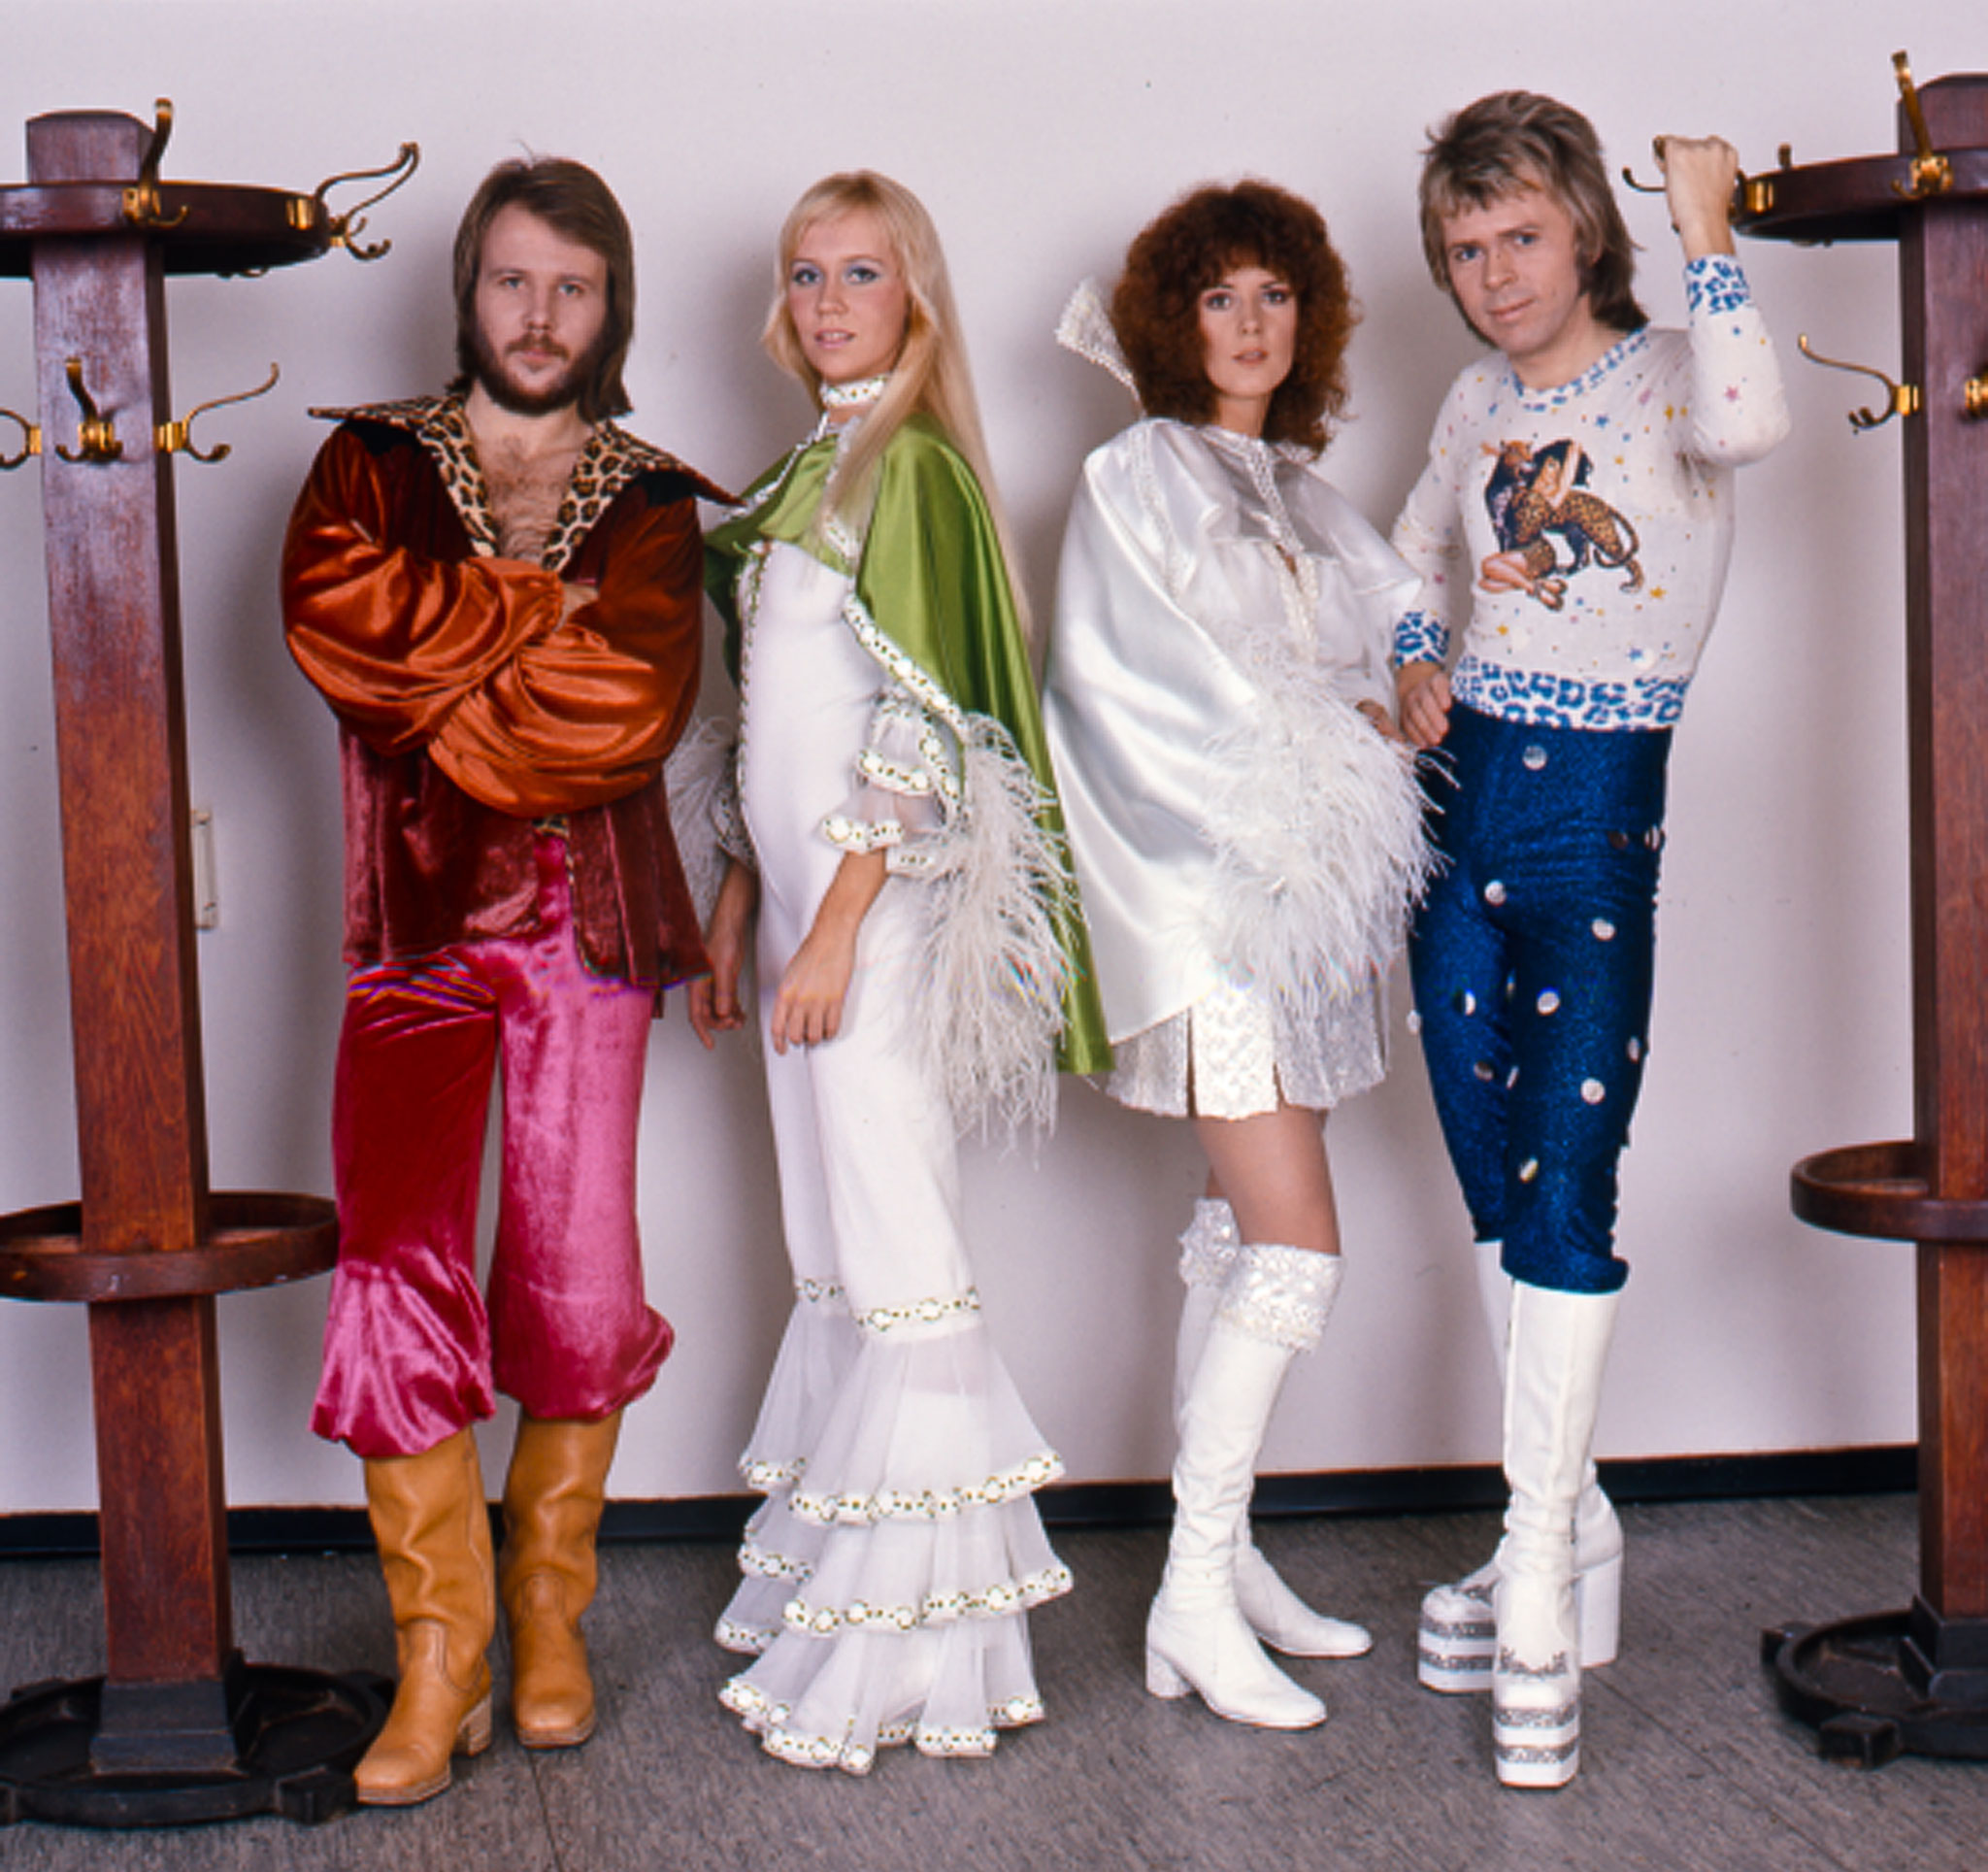 © Hans G. Lehmann | The legendary members of Abba in Hanover 1974